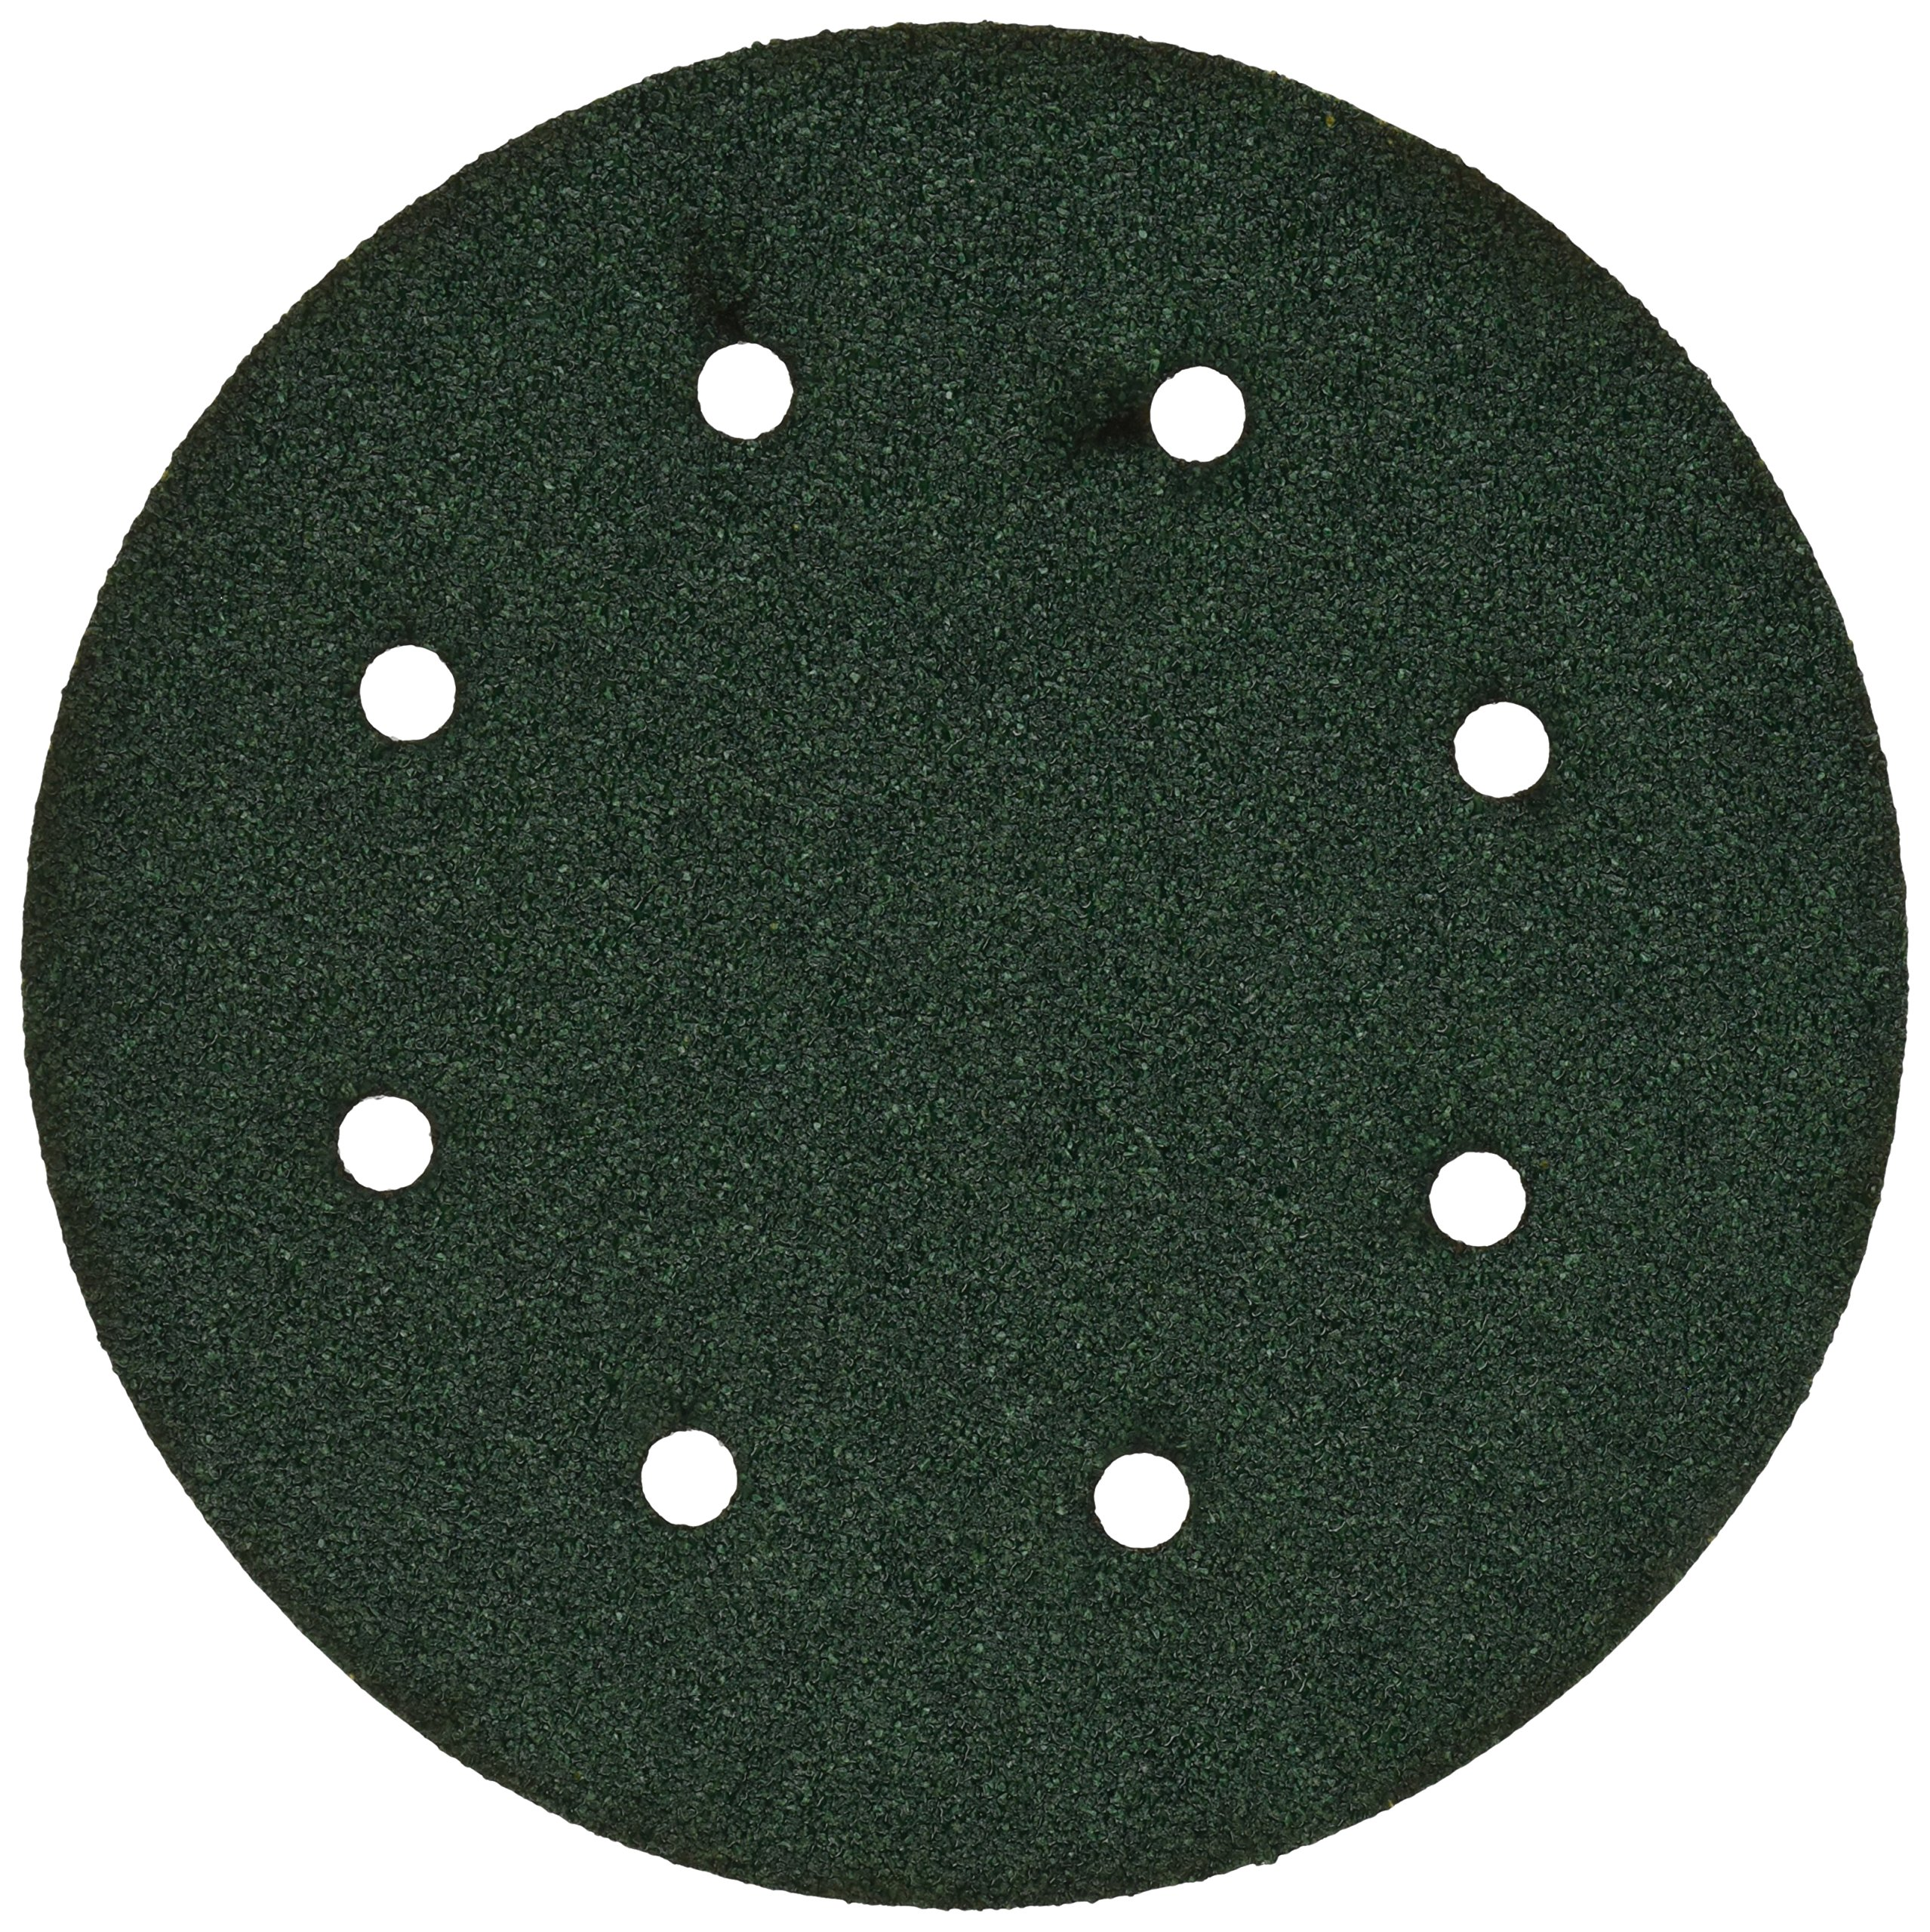 3M 00624 Green Corps Hookit 8'' 40E Grit Regalite Dust-Free Disc by 3M (Image #1)